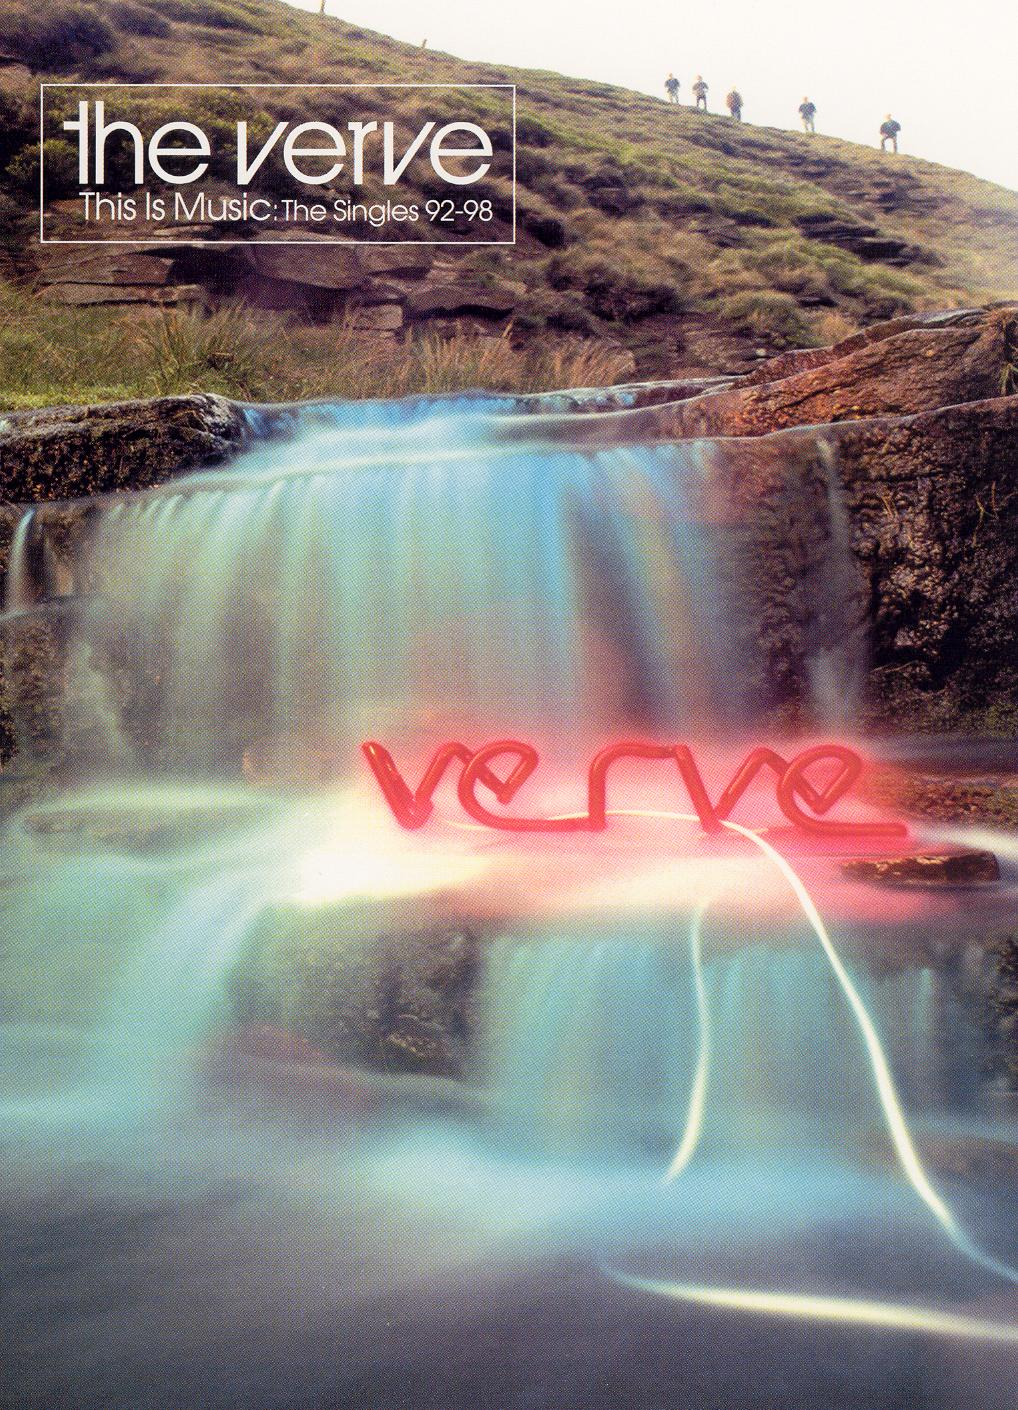 The Verve: This Is Music - The Singles 92-98